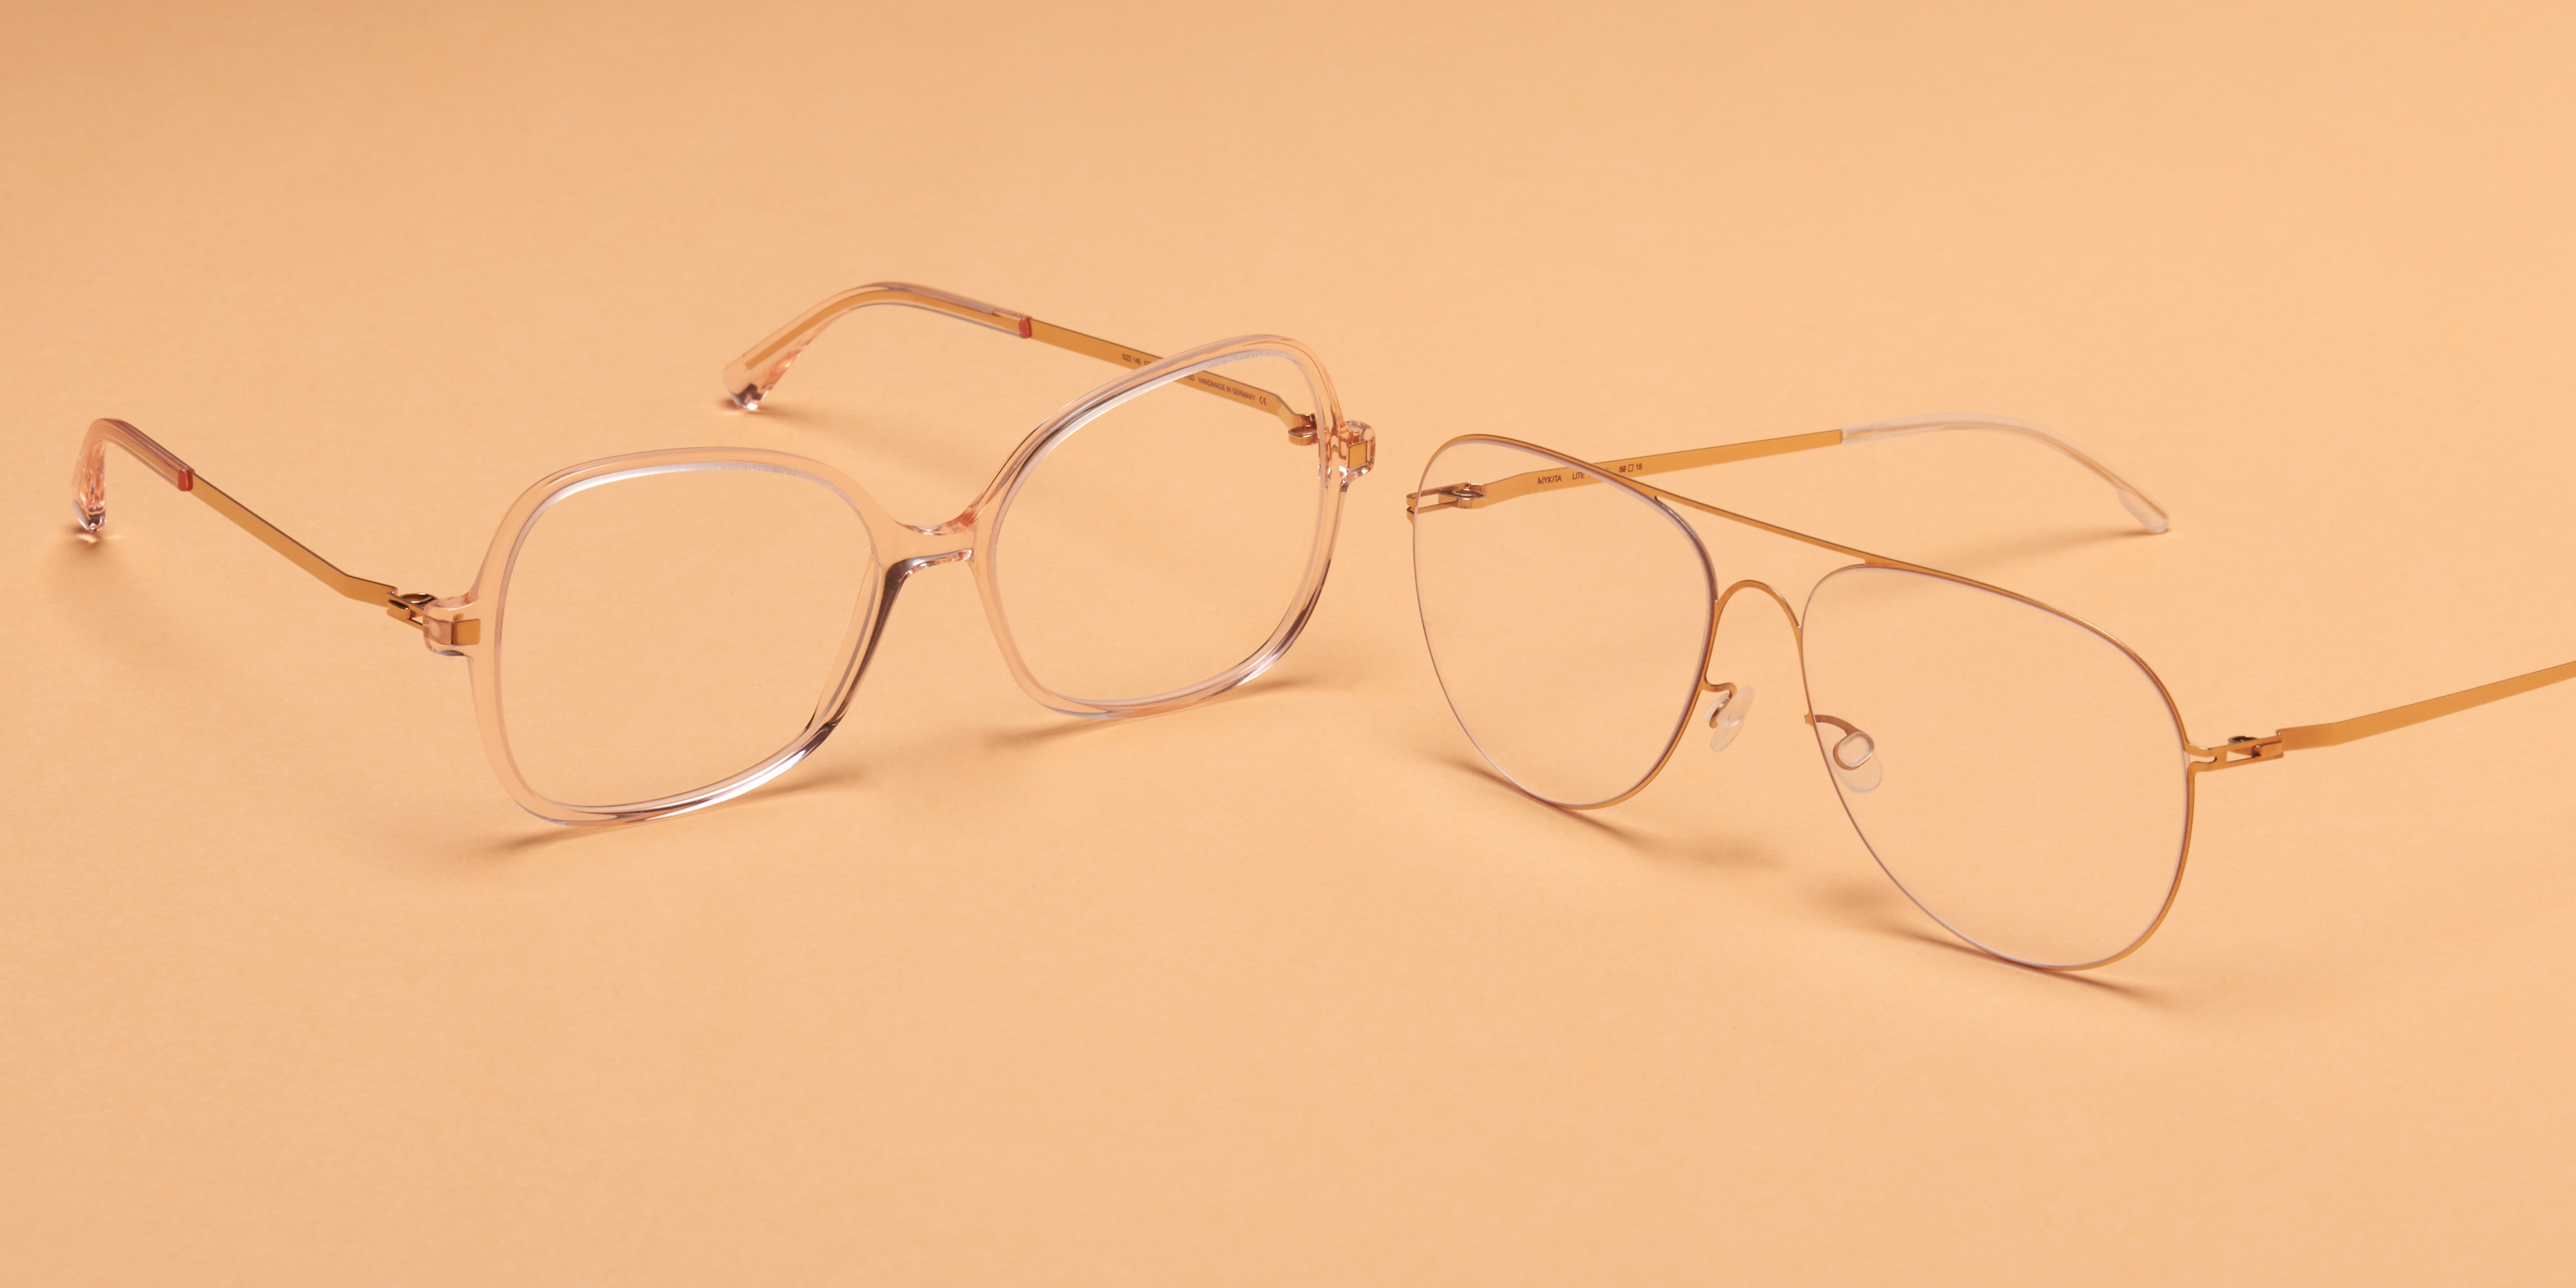 MYKITA New Arrivals Optical Glasses